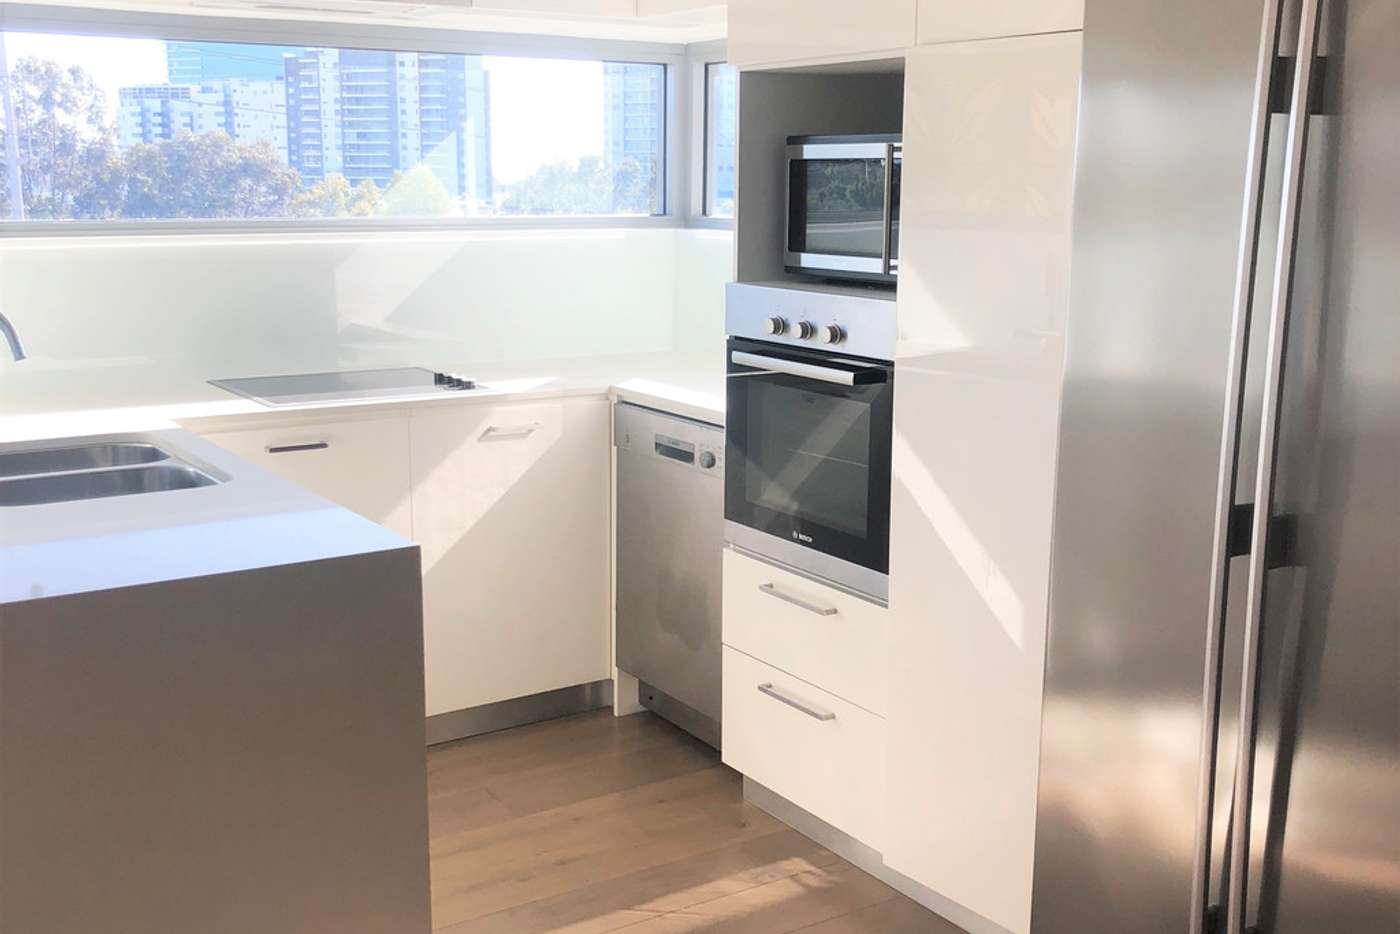 Main view of Homely apartment listing, 26/8 Riversdale Road, Burswood WA 6100